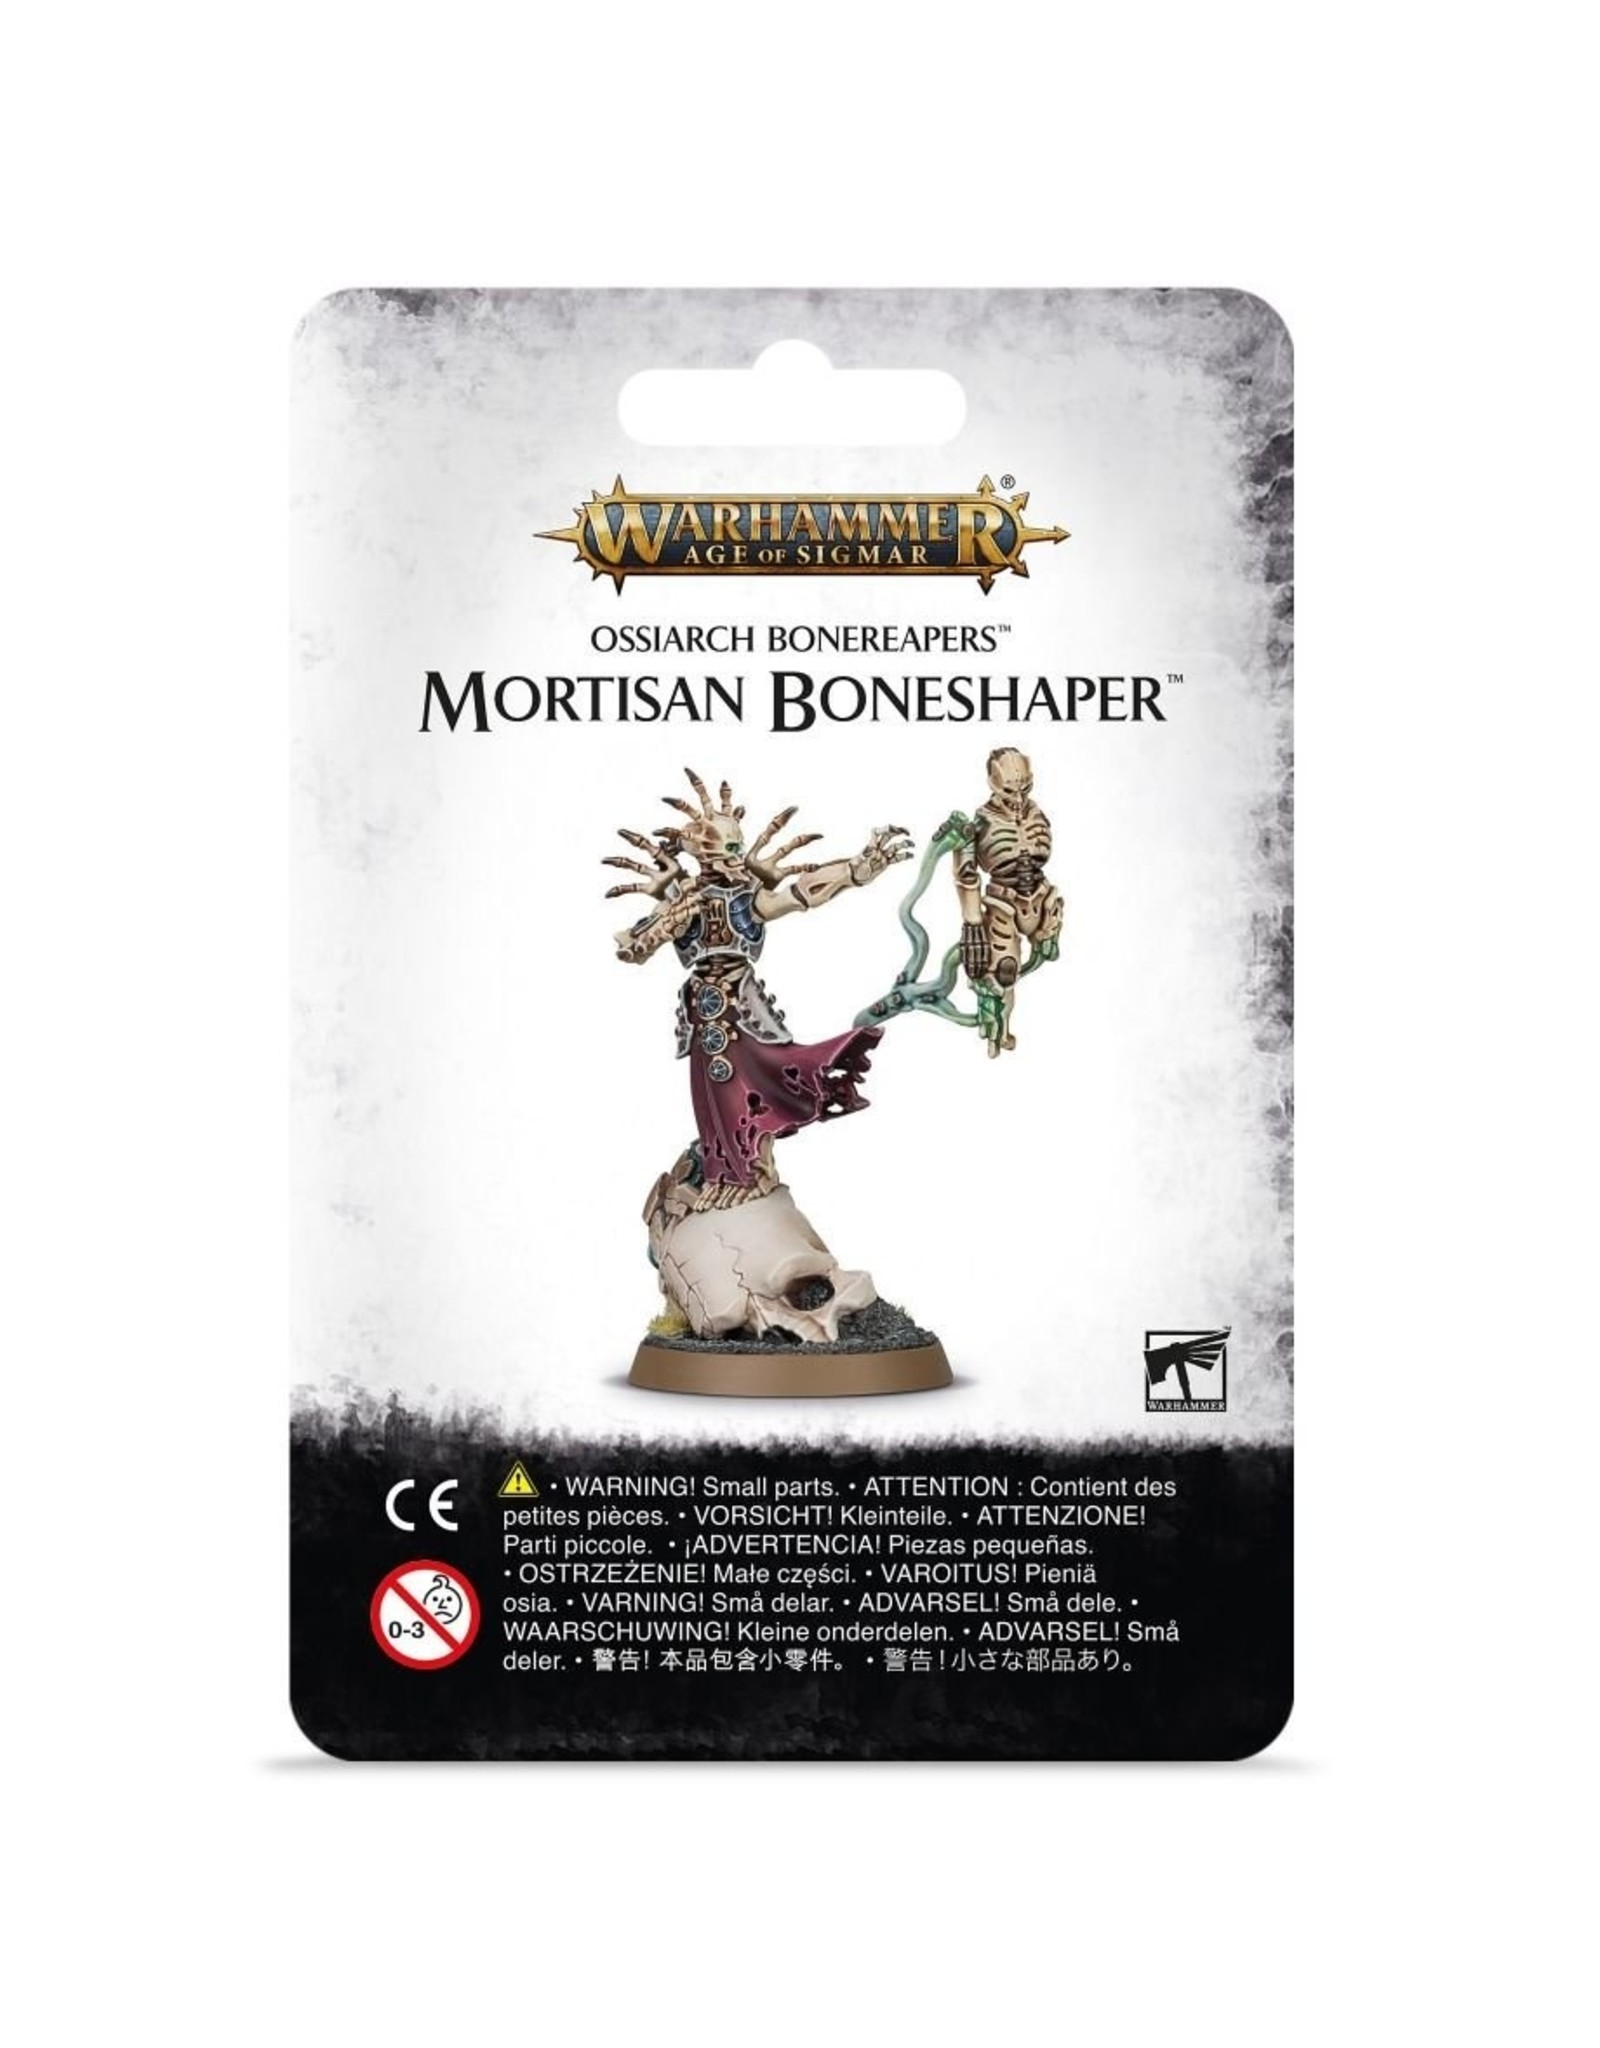 Ossiarch Bonereapers Mortisan Boneshaper (AOS)